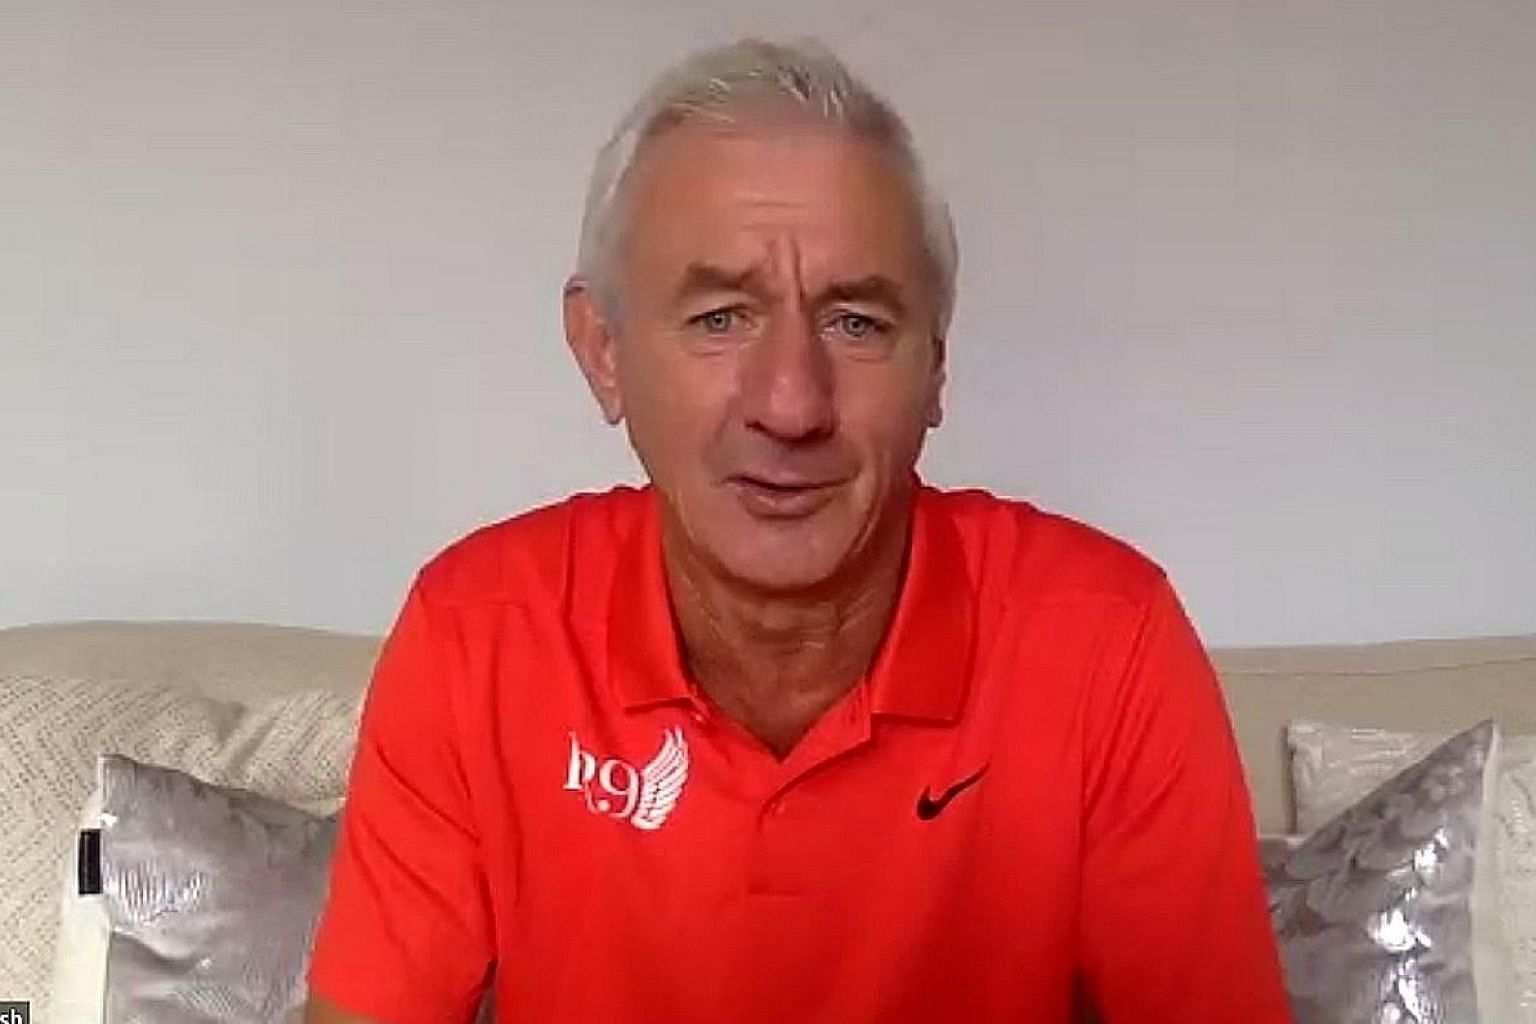 Liverpool legend Ian Rush thrived on the hostile reaction of rival teams and fans when he scored 346 goals during two Anfield stints from 1980 to 1996.